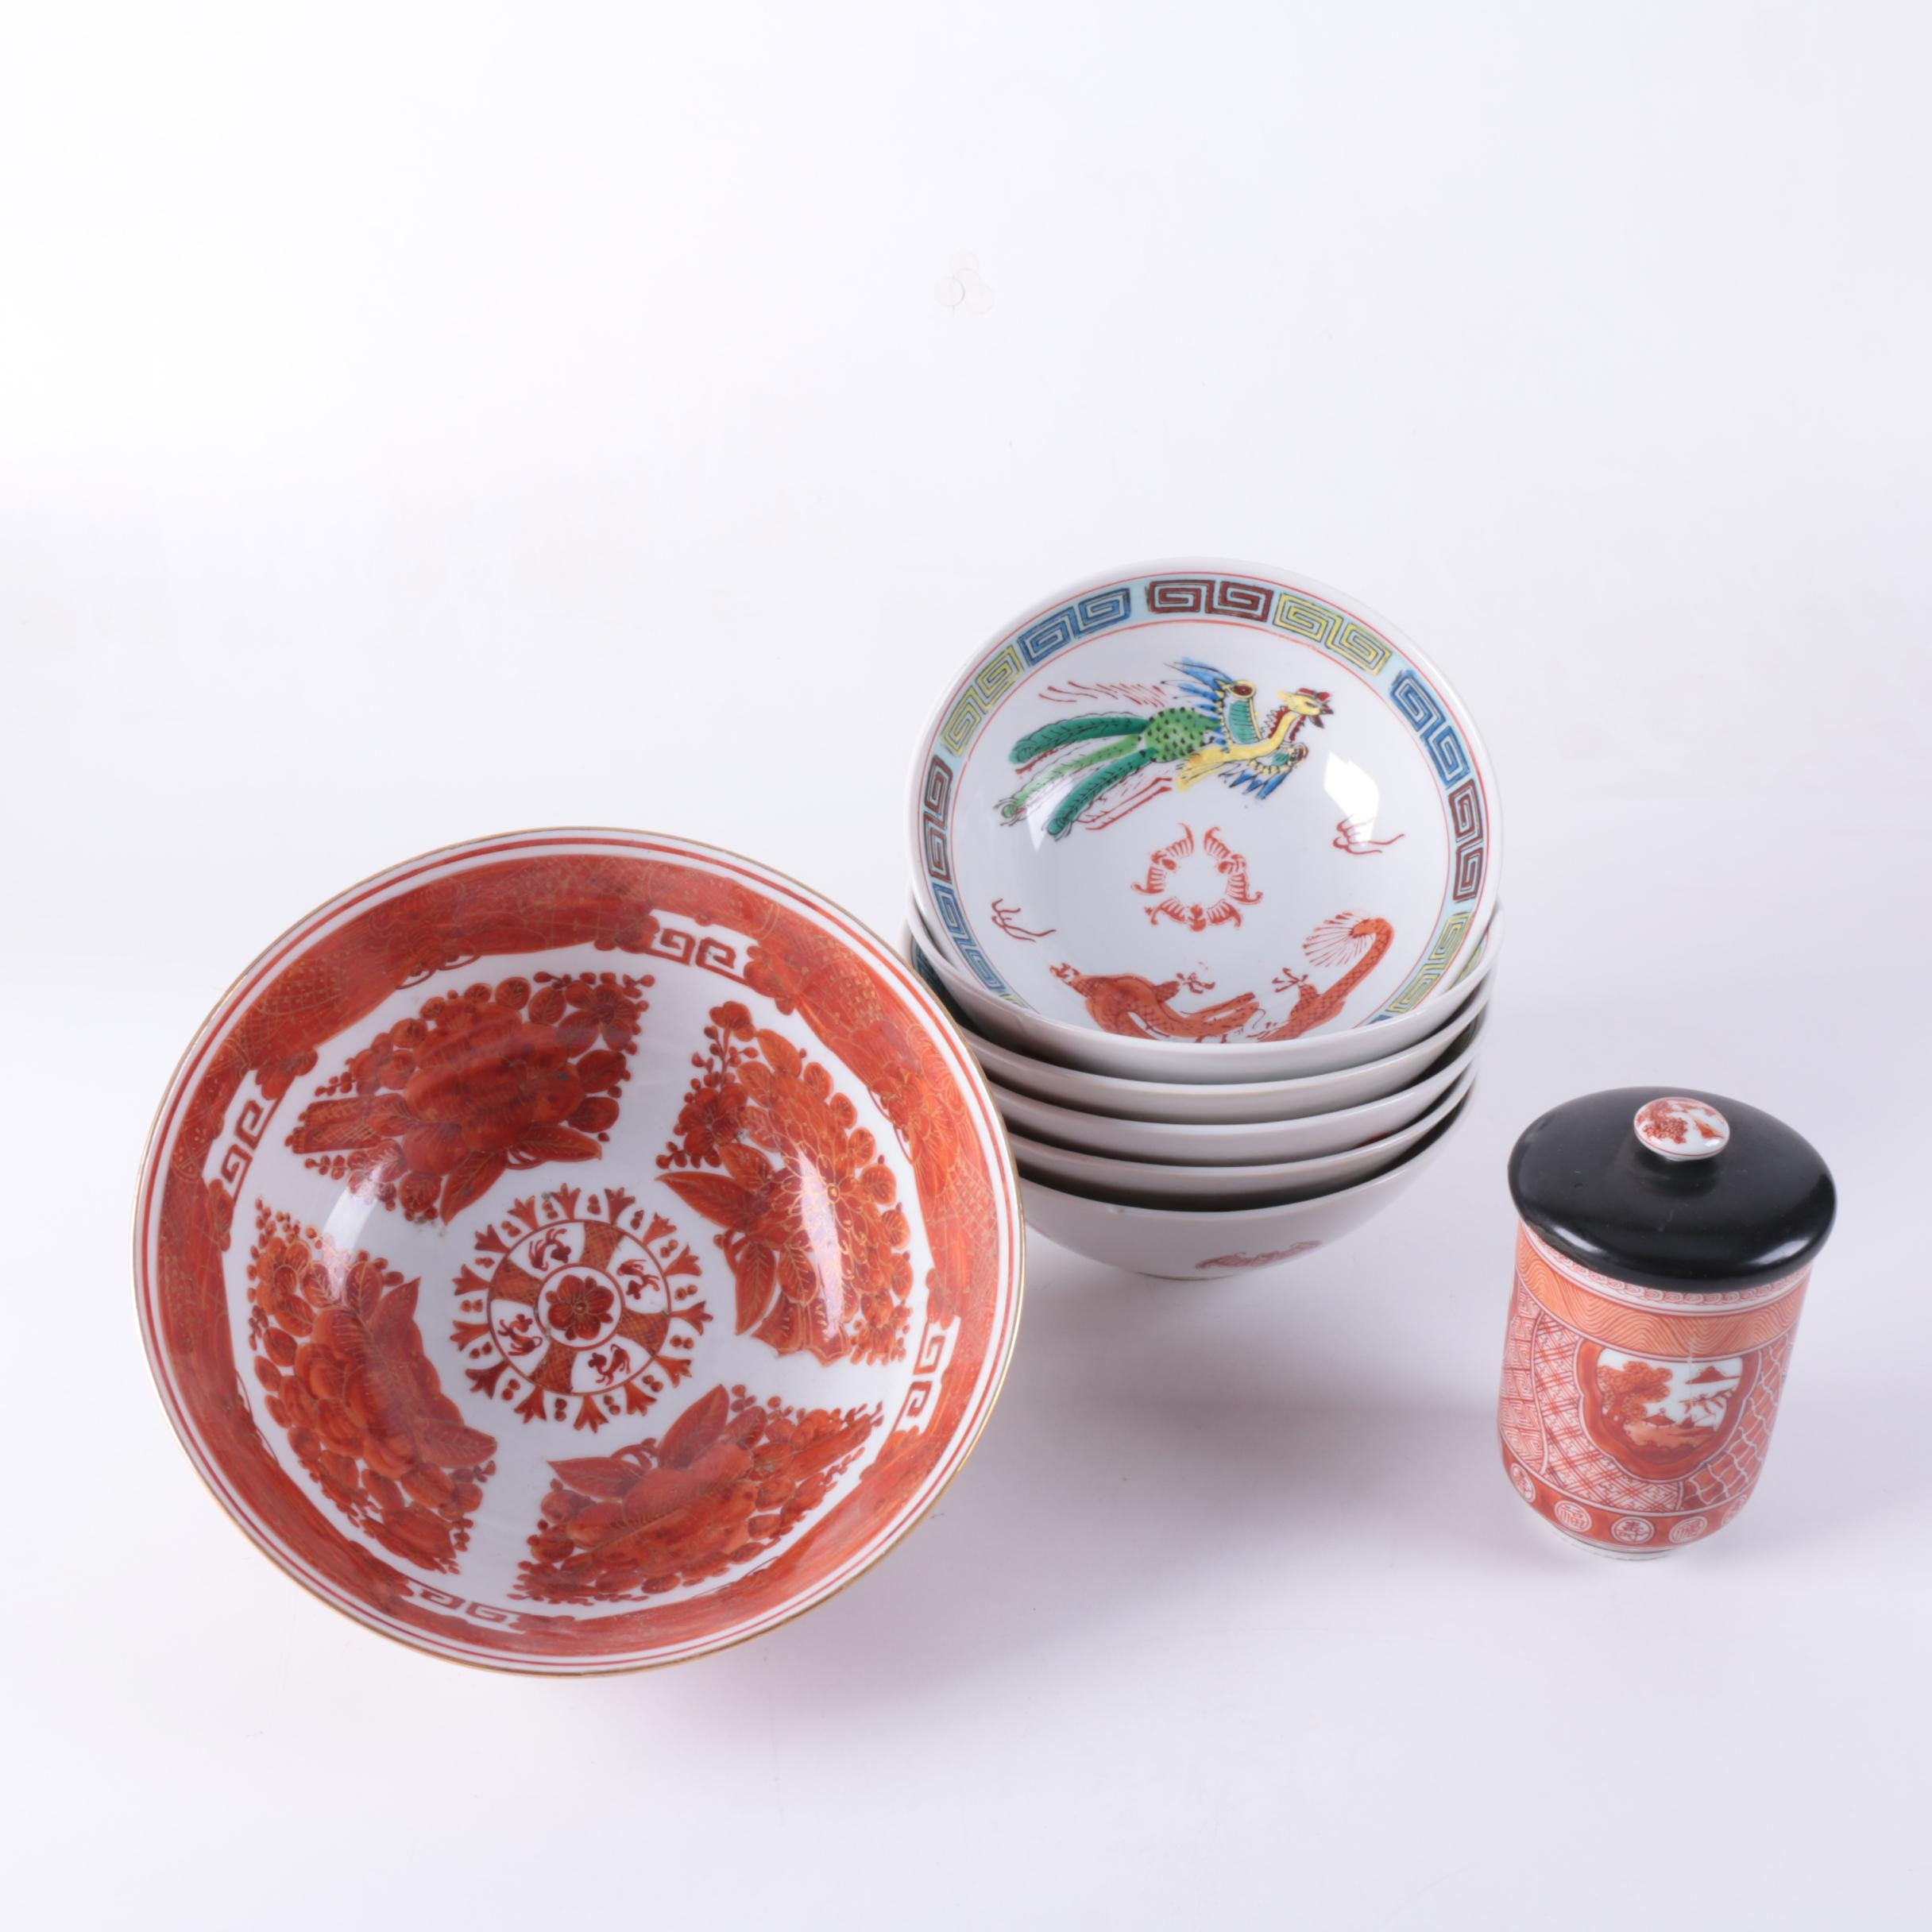 Chinese Porcelain Bowls and Tea Mug